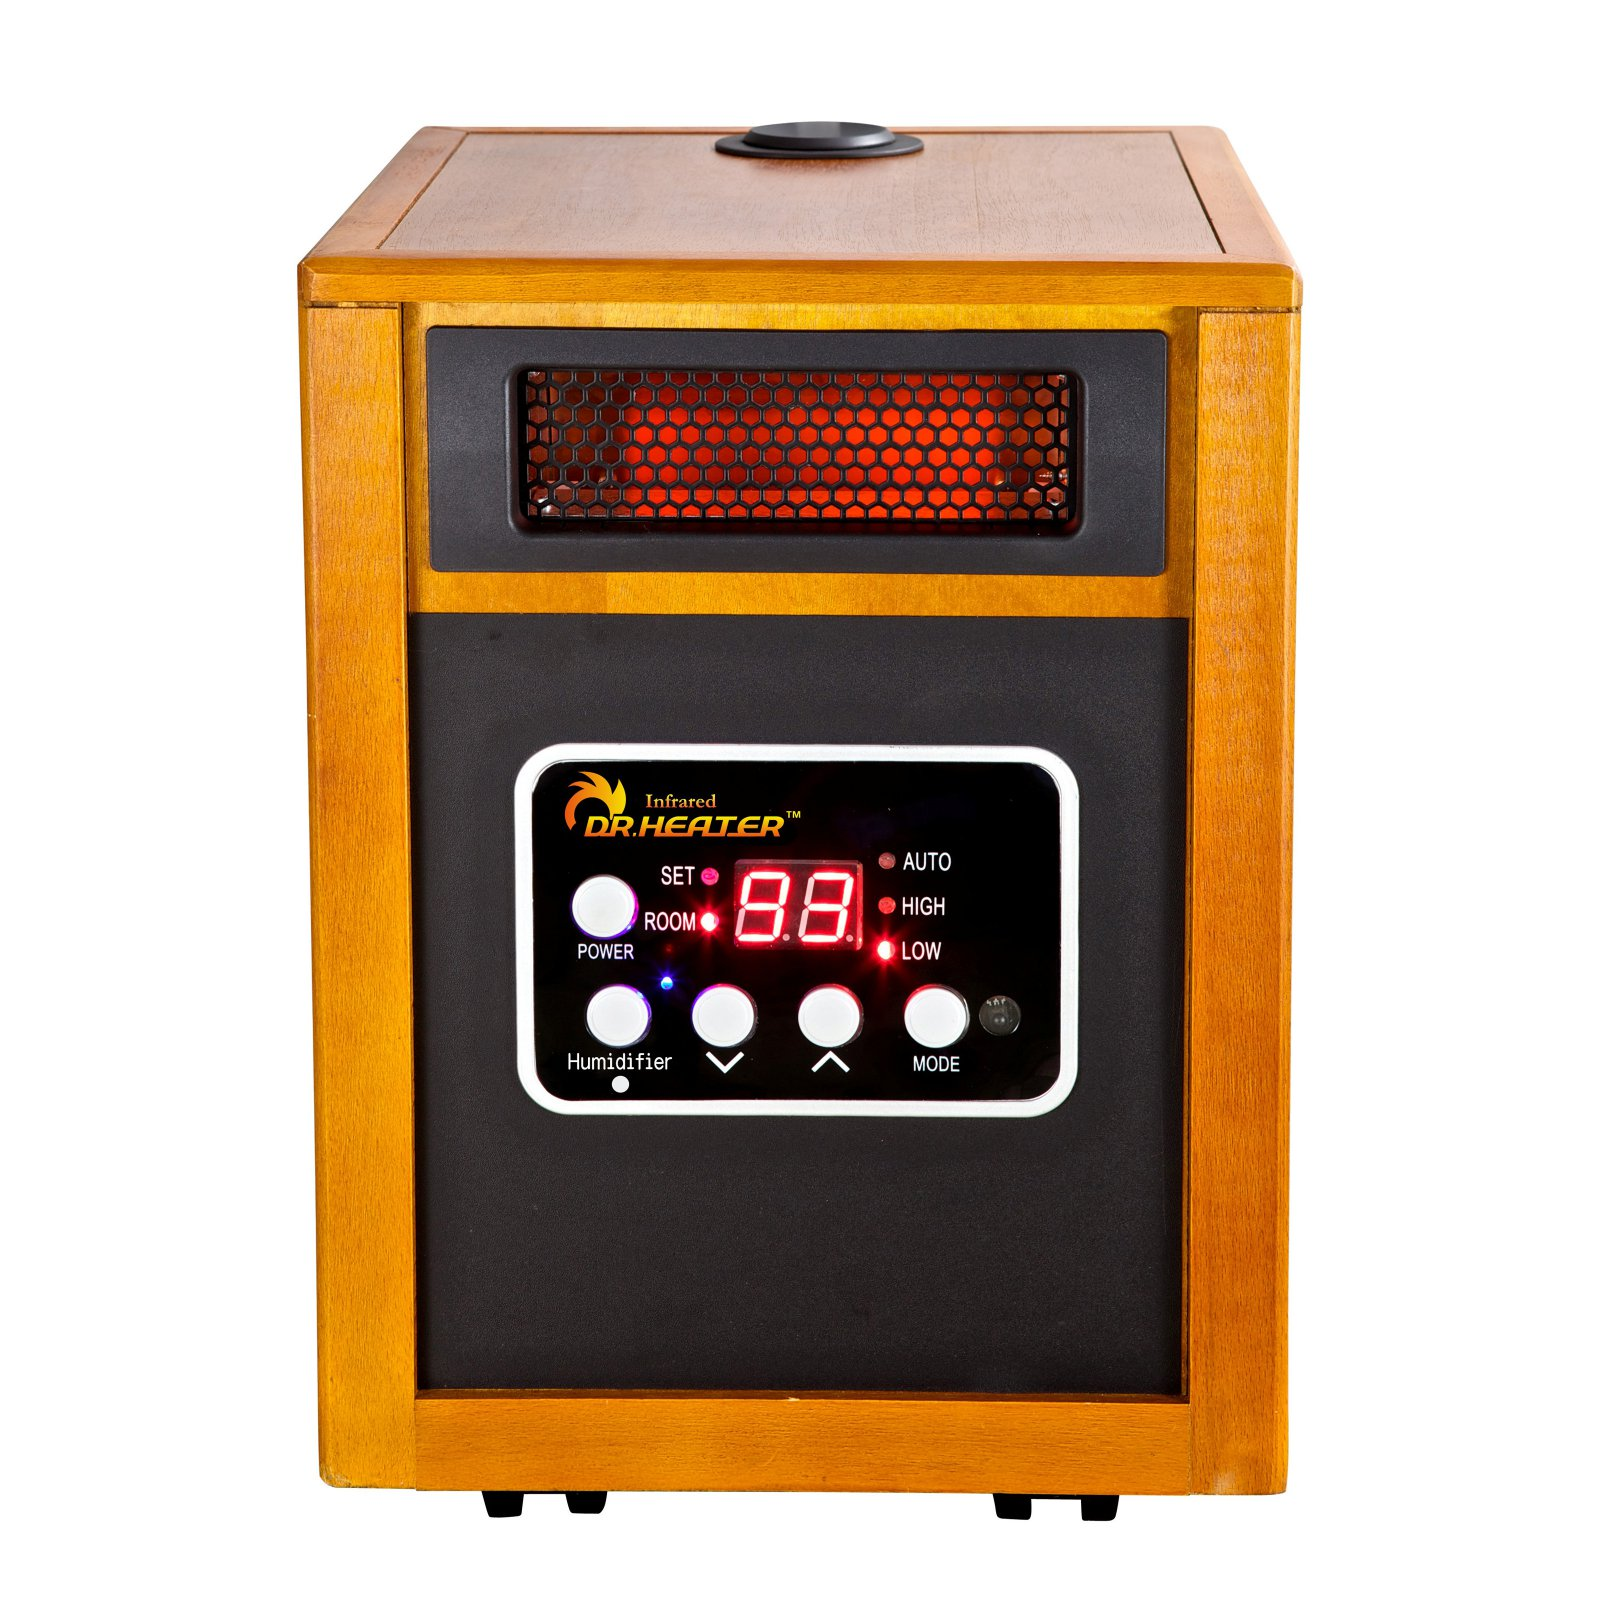 Dr. Infrared Heater DR-968H Portable Space Heater with Humidifier, 1500W